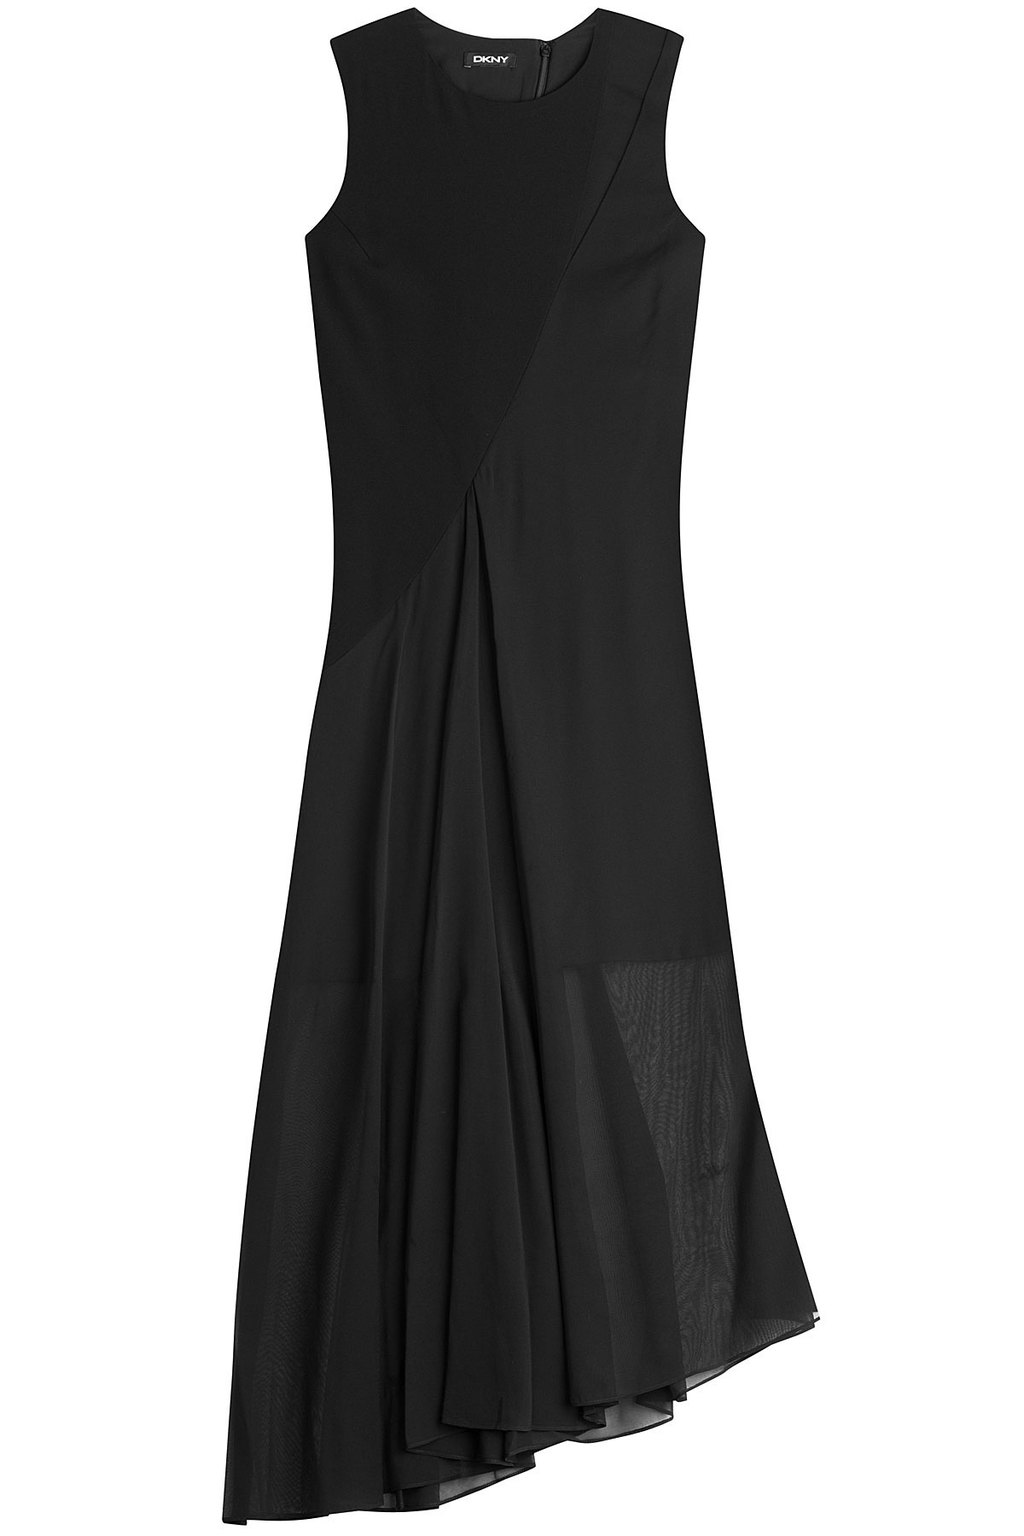 Asymmetric Dress Black - length: below the knee; sleeve style: strapless; predominant colour: black; fit: body skimming; style: asymmetric (hem); neckline: crew; sleeve length: sleeveless; texture group: other - light to midweight; season: a/w 2015; wardrobe: highlight